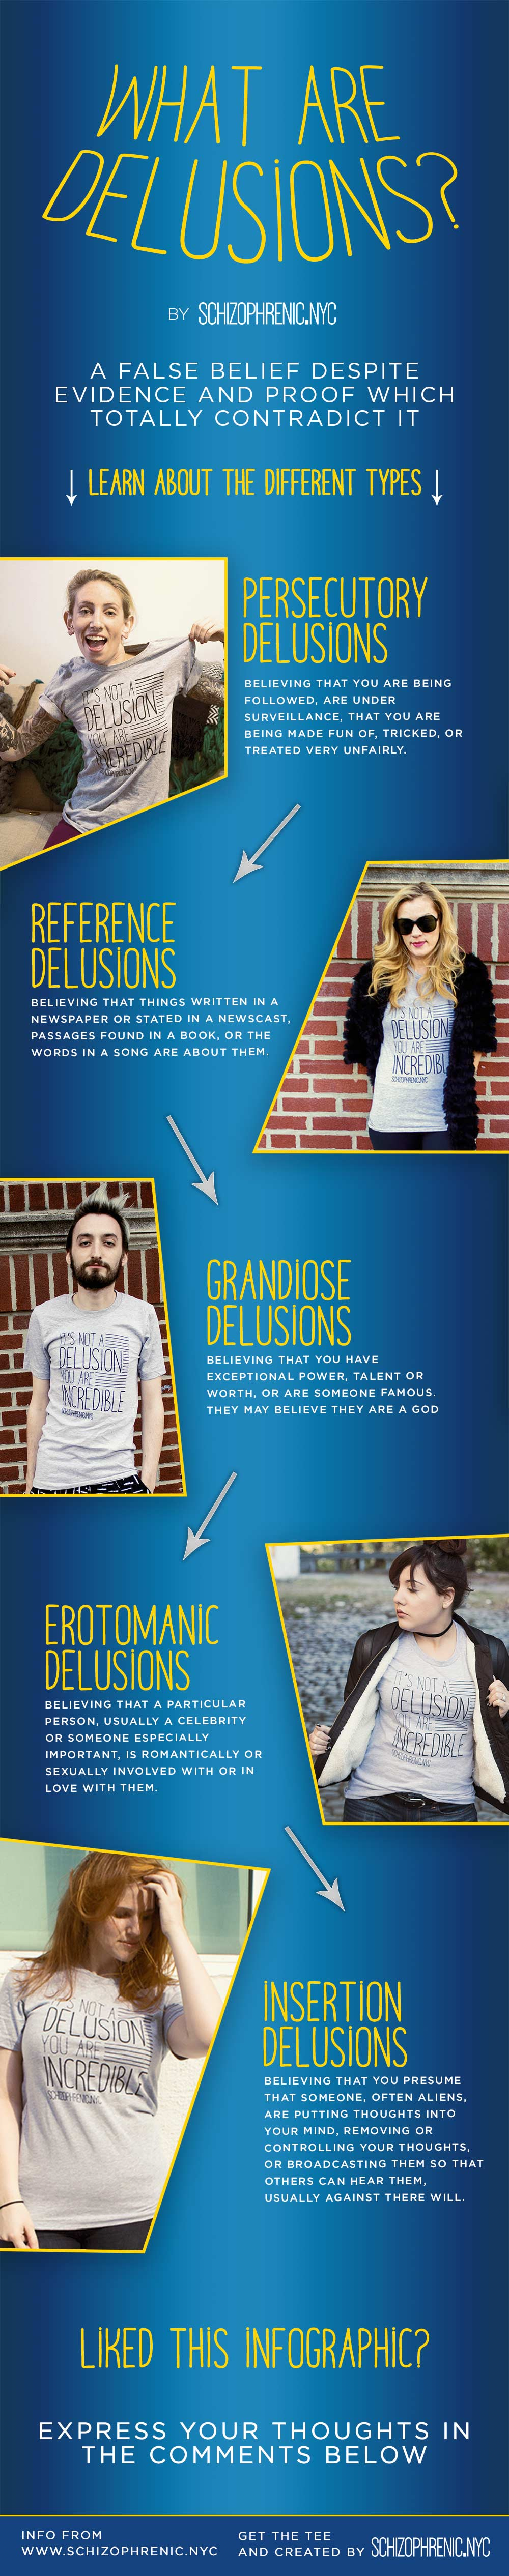 What are Delusions? Learn about the different types. 1